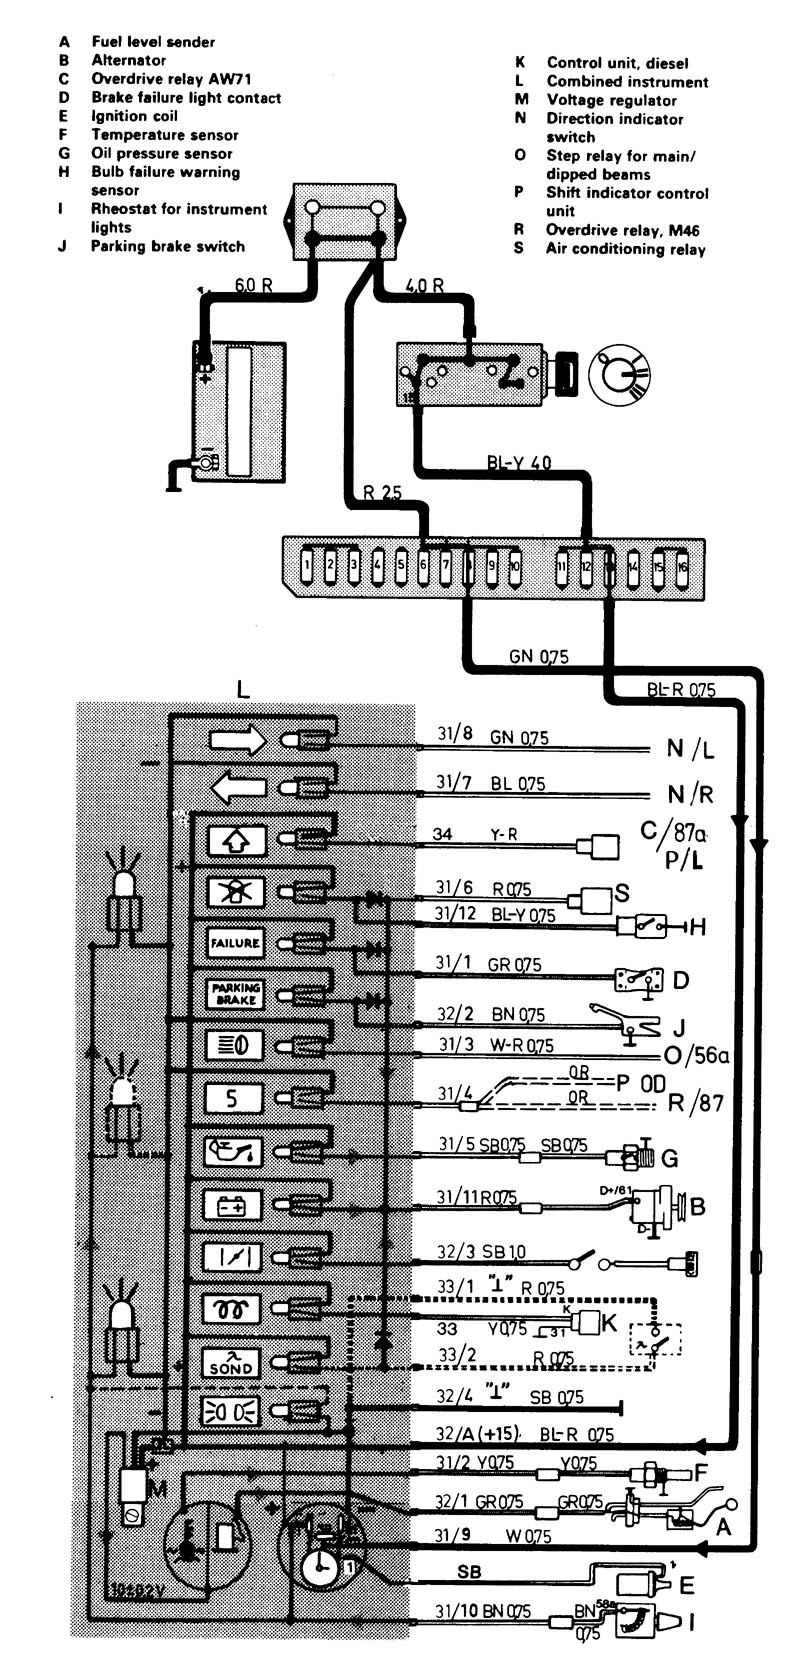 Volvo Wiring Diagram Instrumentation on 1995 acura integra wiring diagram